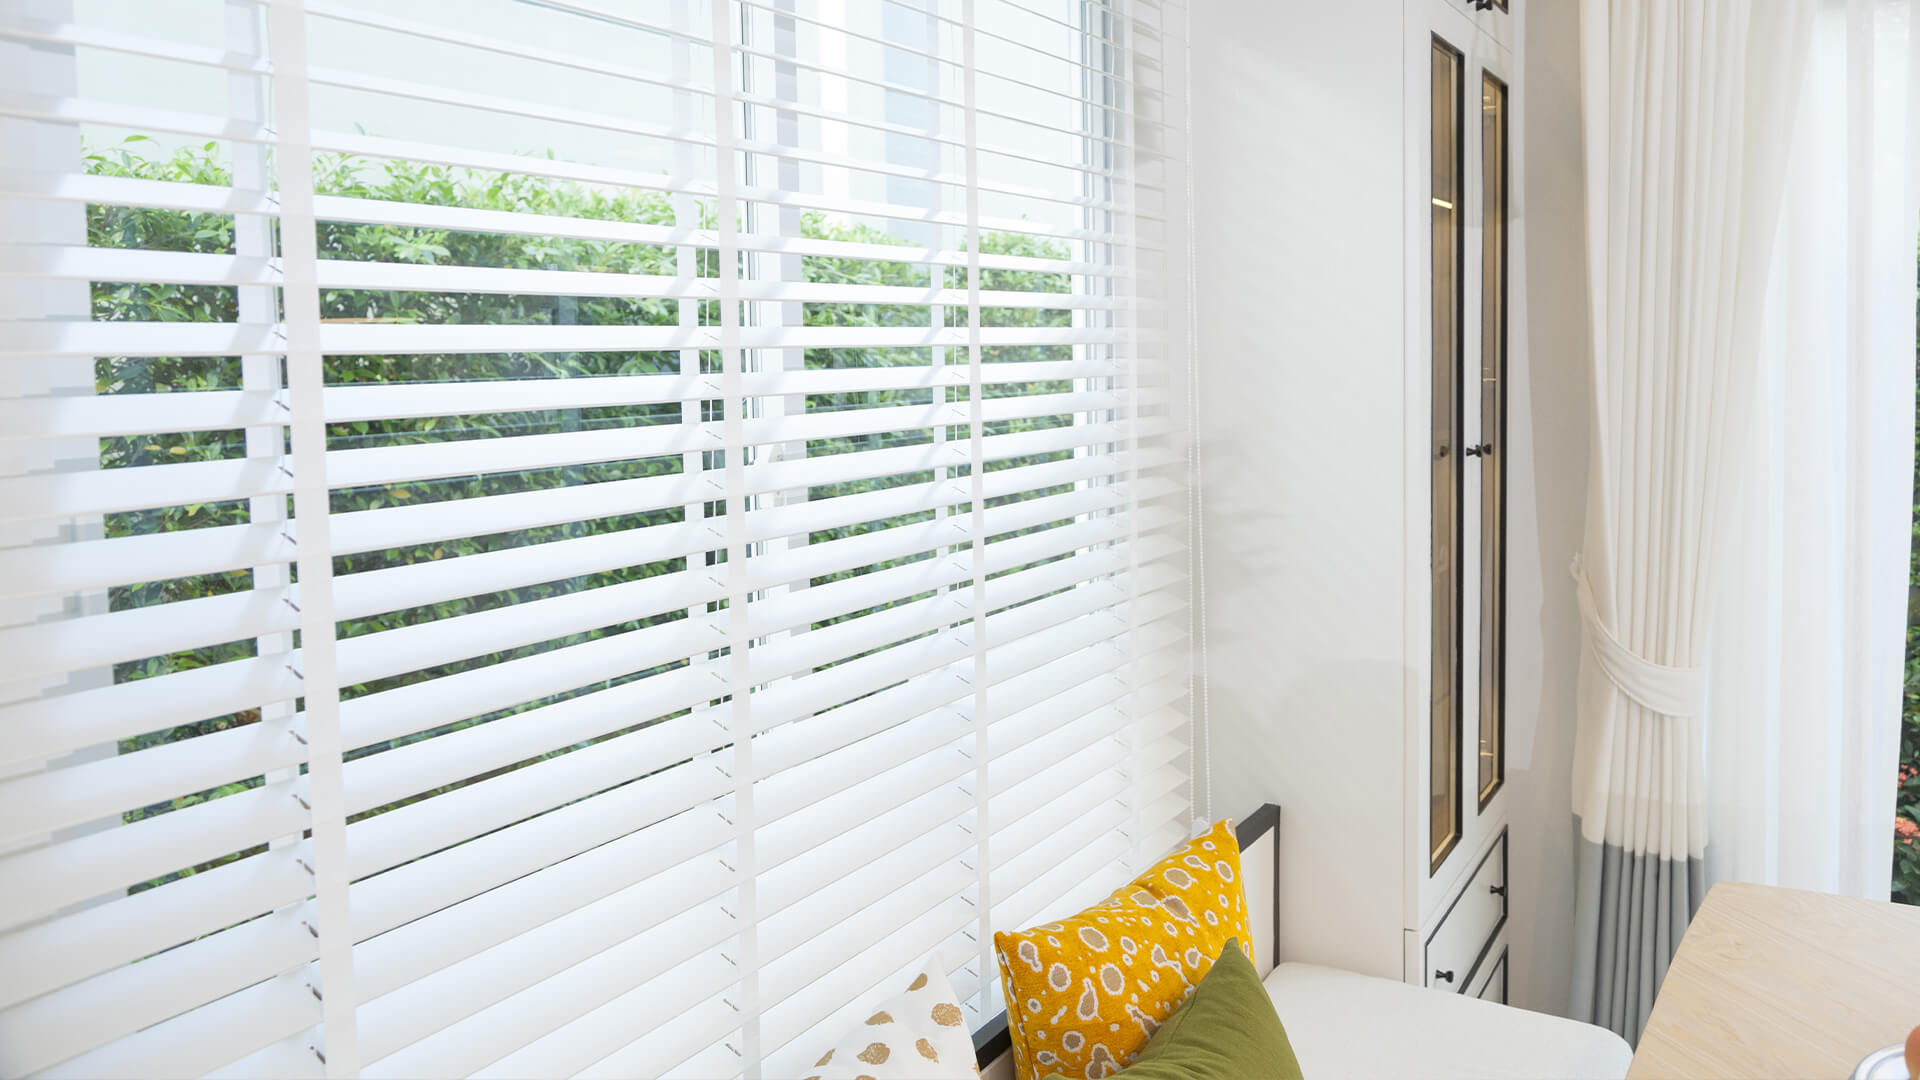 Should You Buy New Blinds For Your Home? Here Are Some Tips - Build Magazine